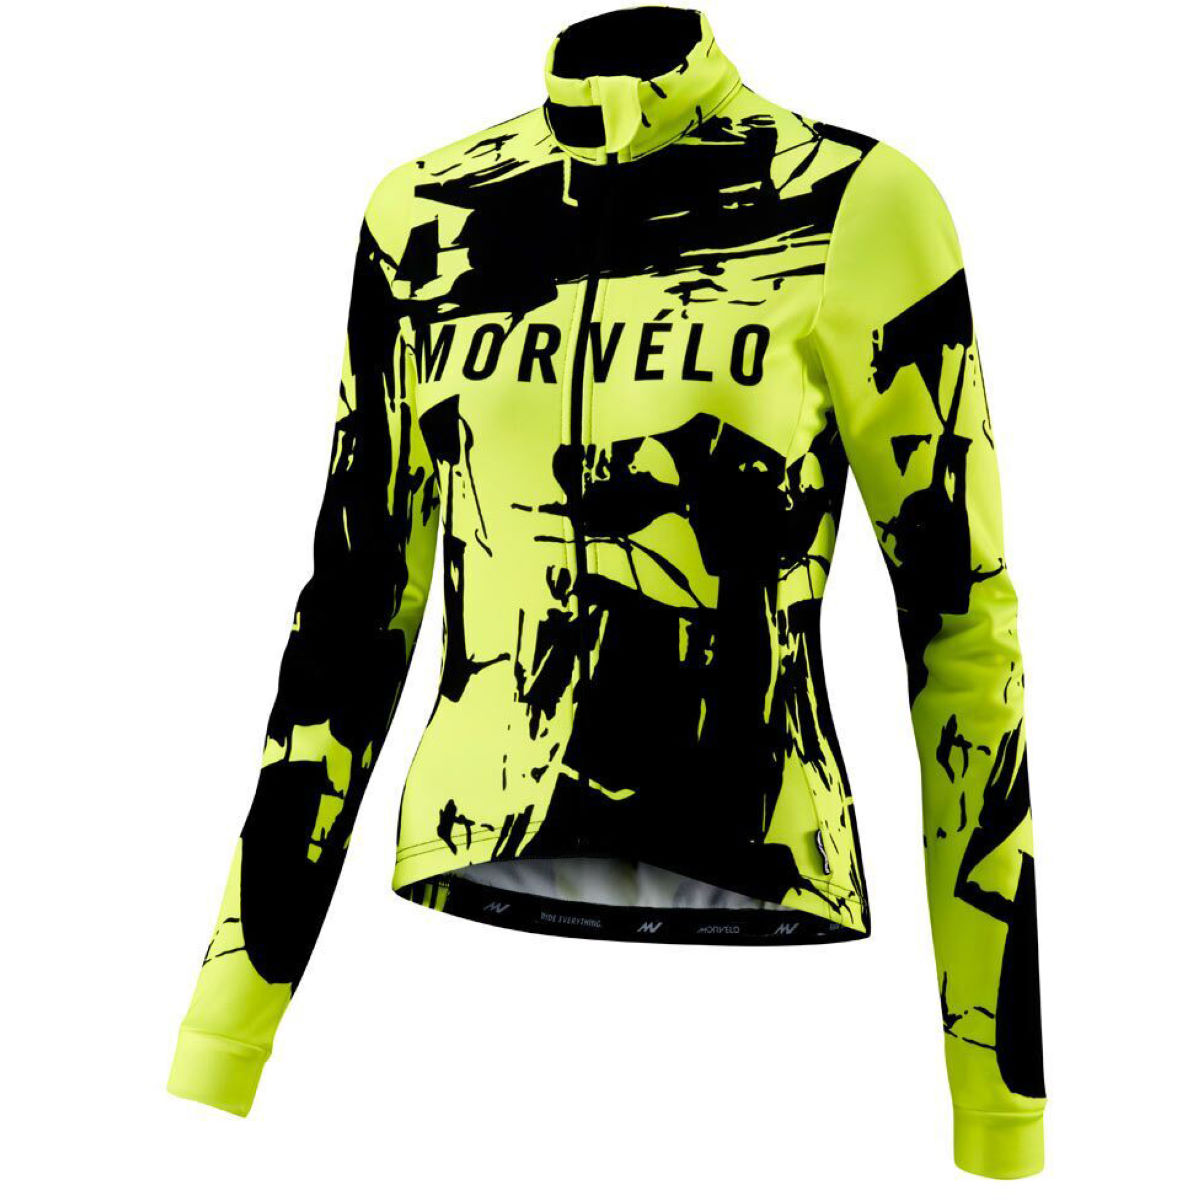 Morvelo Women's Blaze Thermoactive Long Sleeve Jersey - Maillots